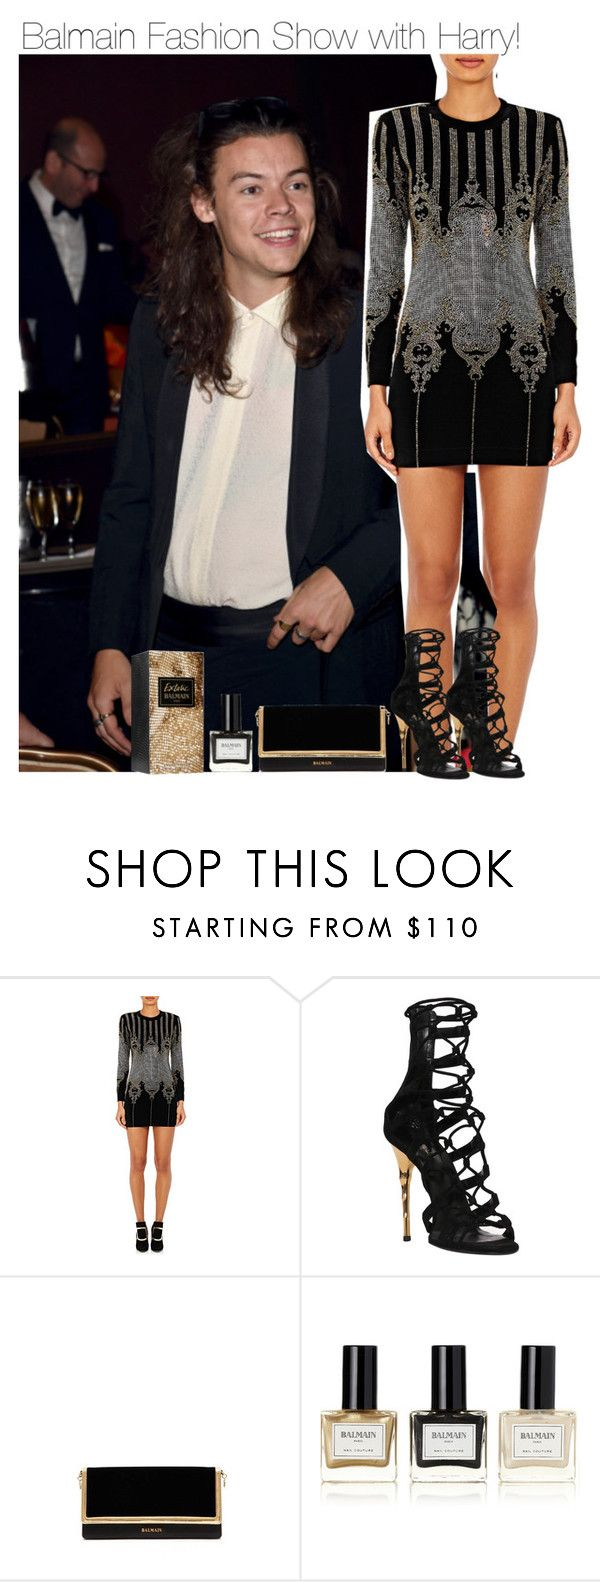 """""""Balmain Fashion Show with Harry!"""" by directionermixer01 ❤ liked on Polyvore featuring Balmain"""